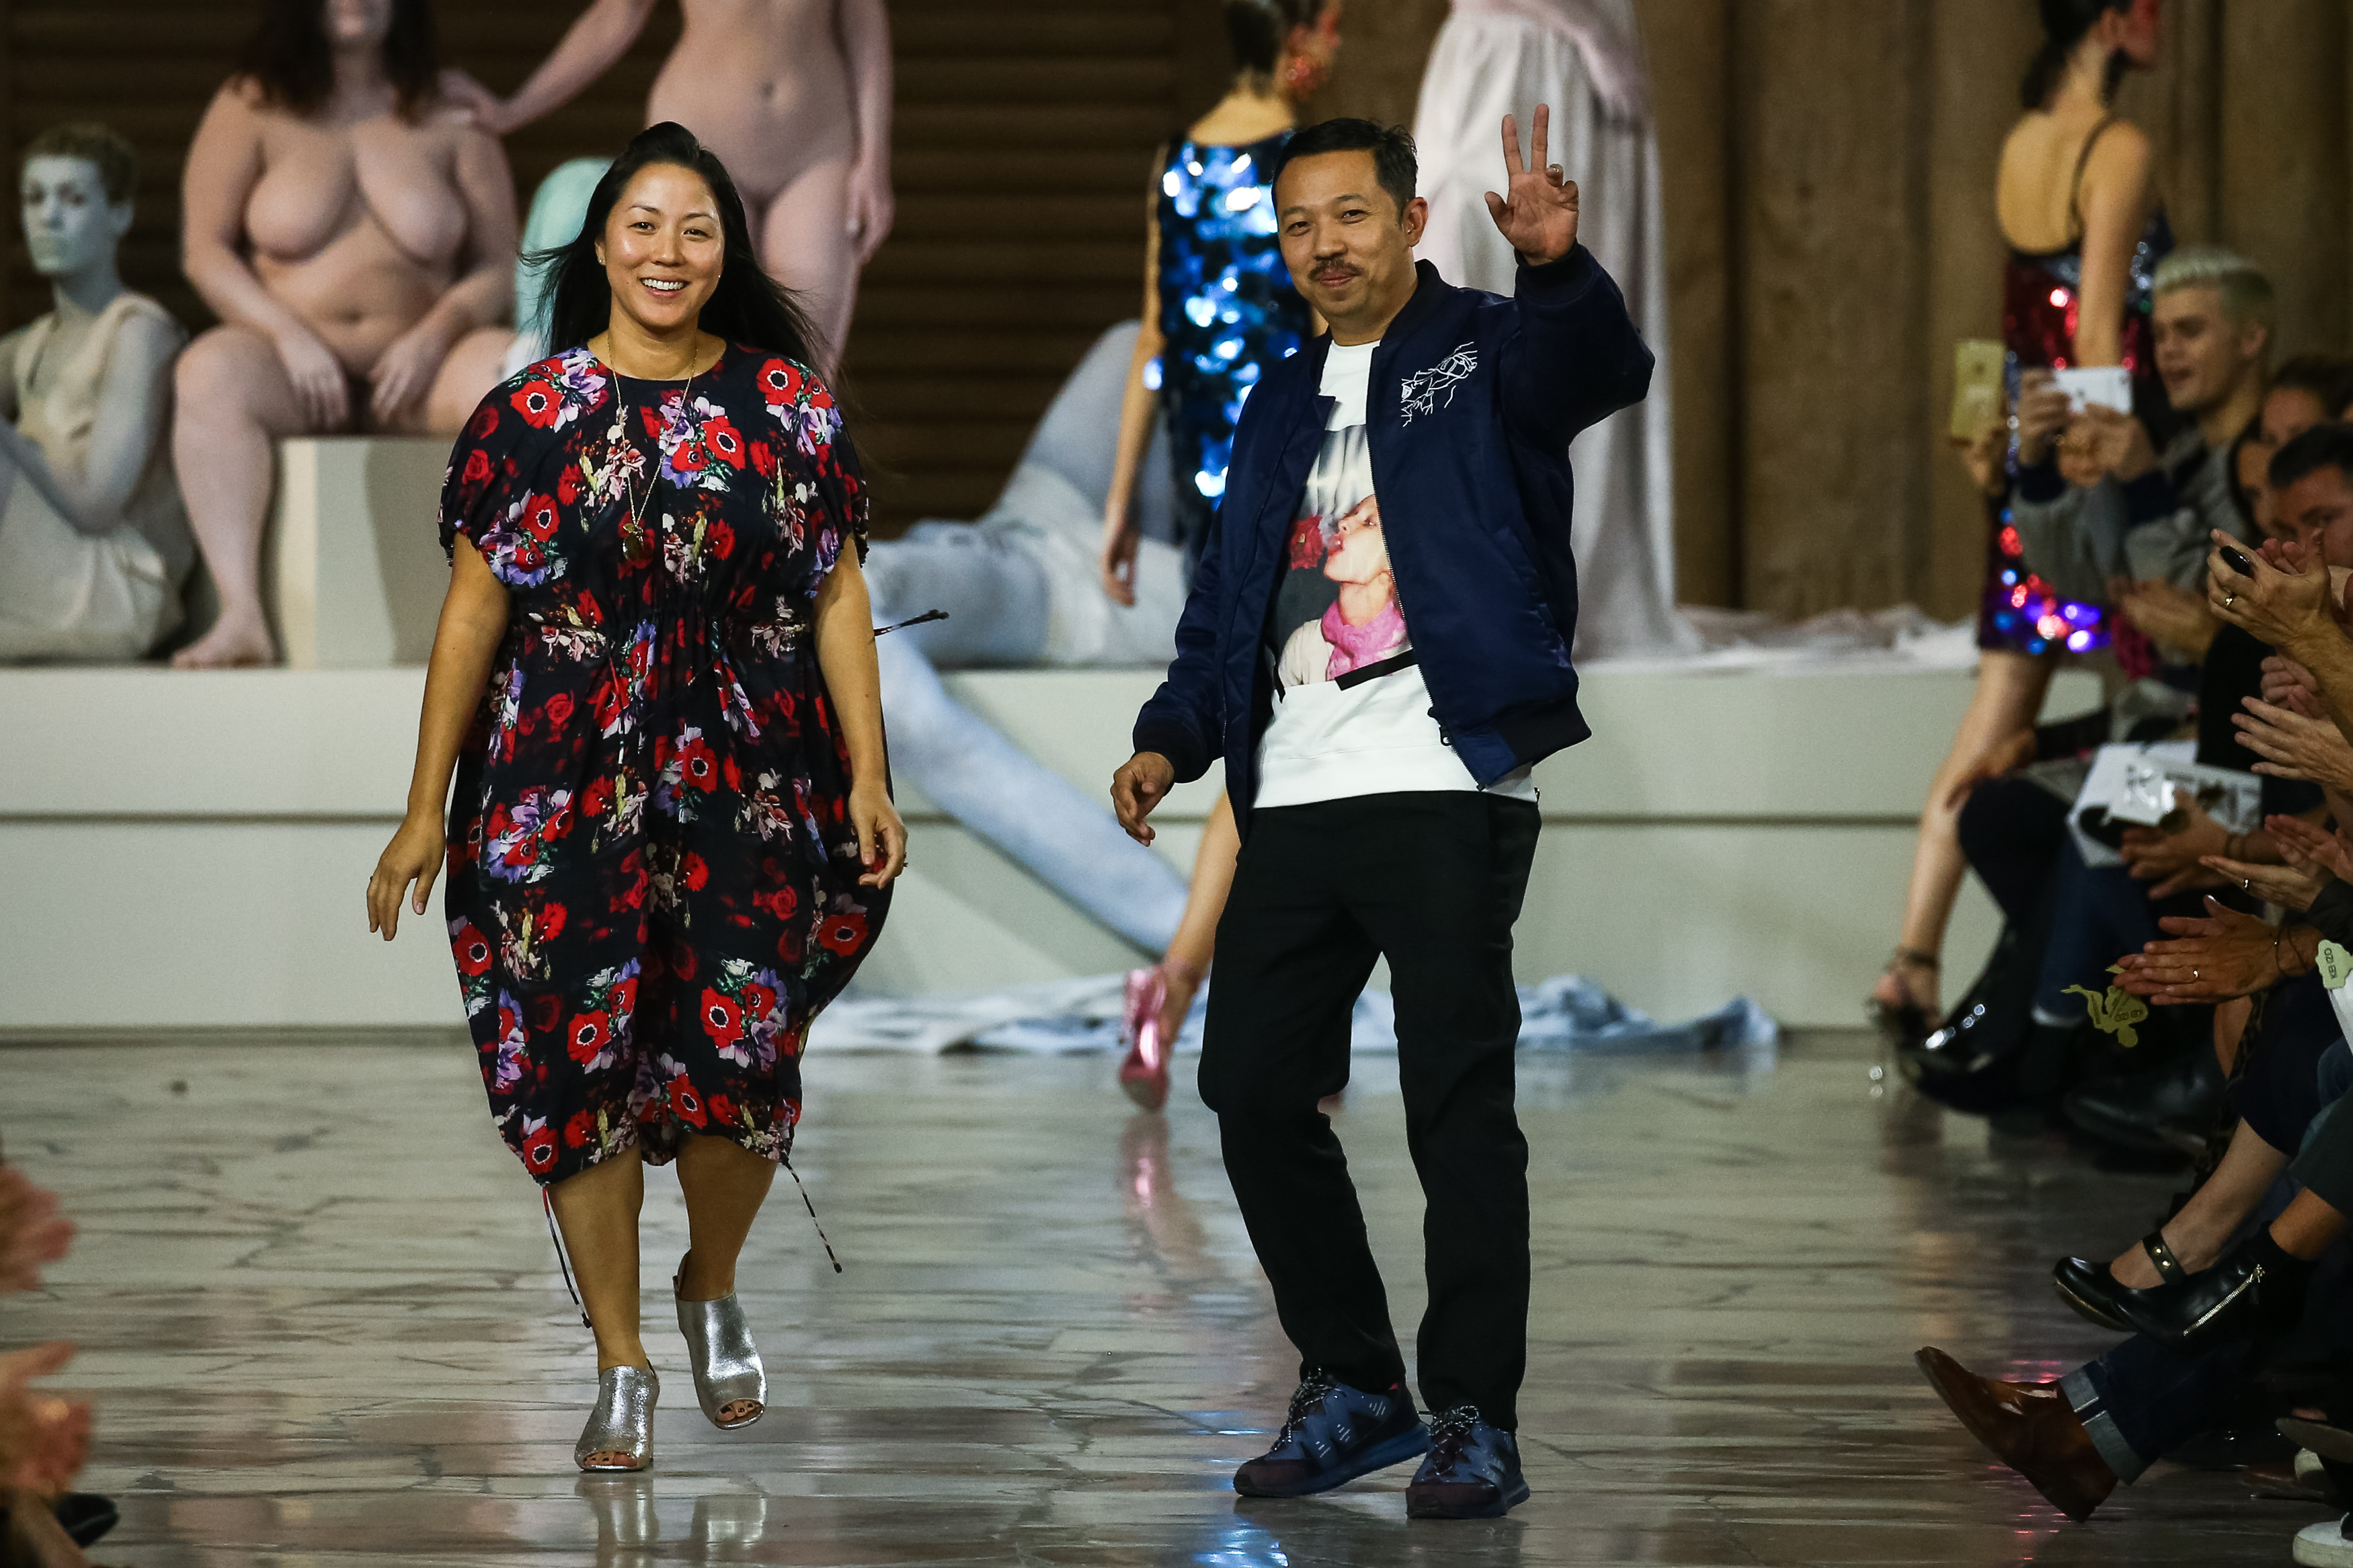 0d8e45a3 PARIS, FRANCE - OCTOBER 04: Designers Carol Lim and Humberto Leon walk the  runway during the Kenzo show as part of the Paris Fashion Week Womenswear  ...